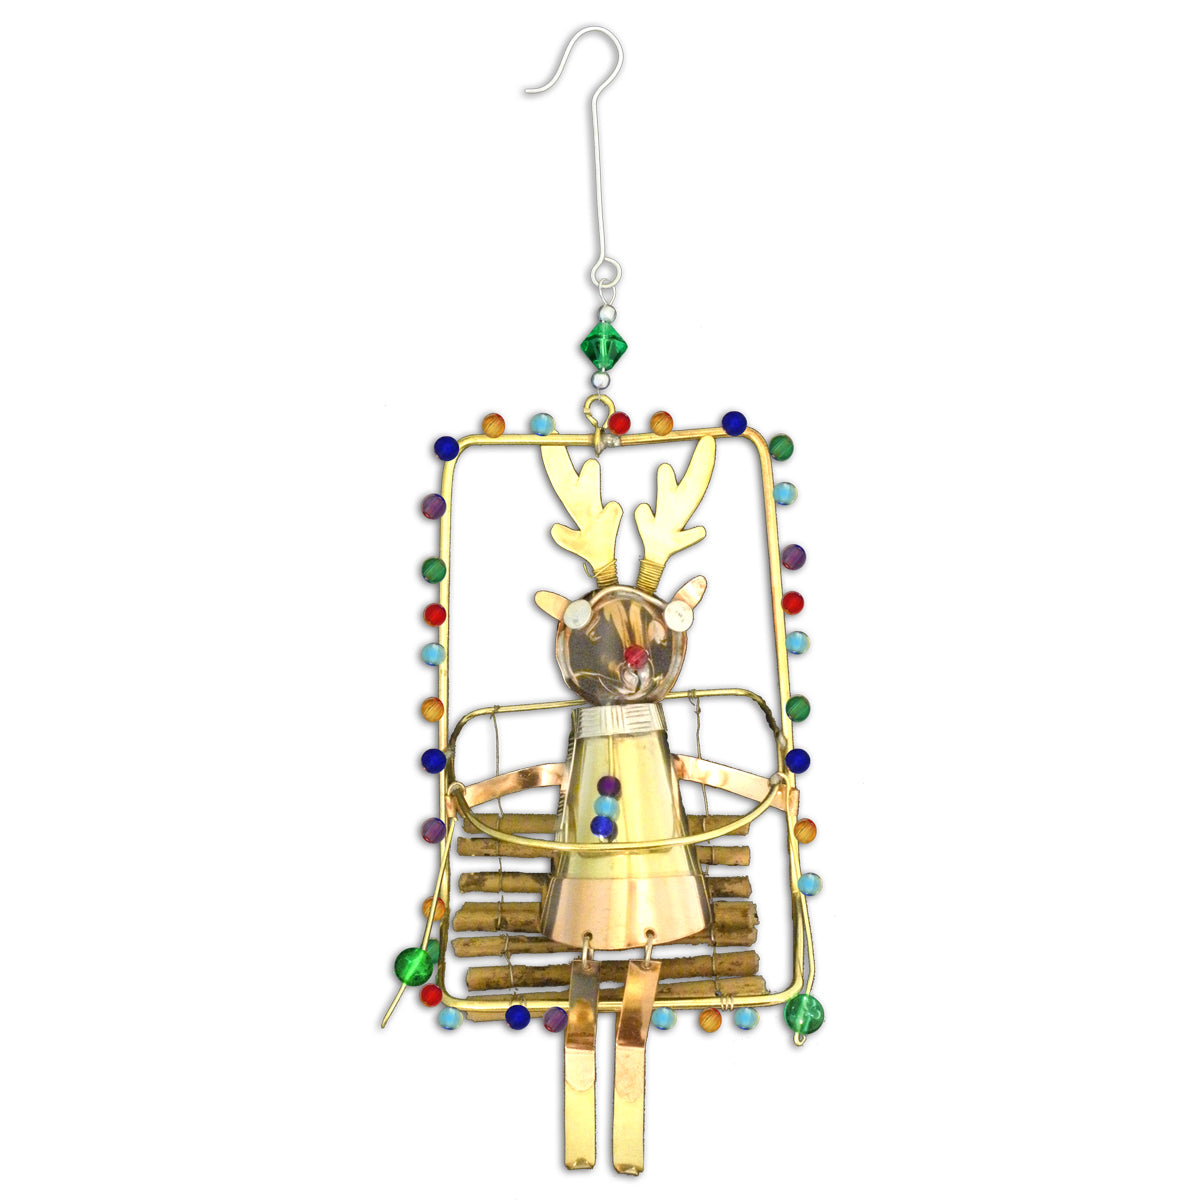 Ski Lift Reindeer Ornament